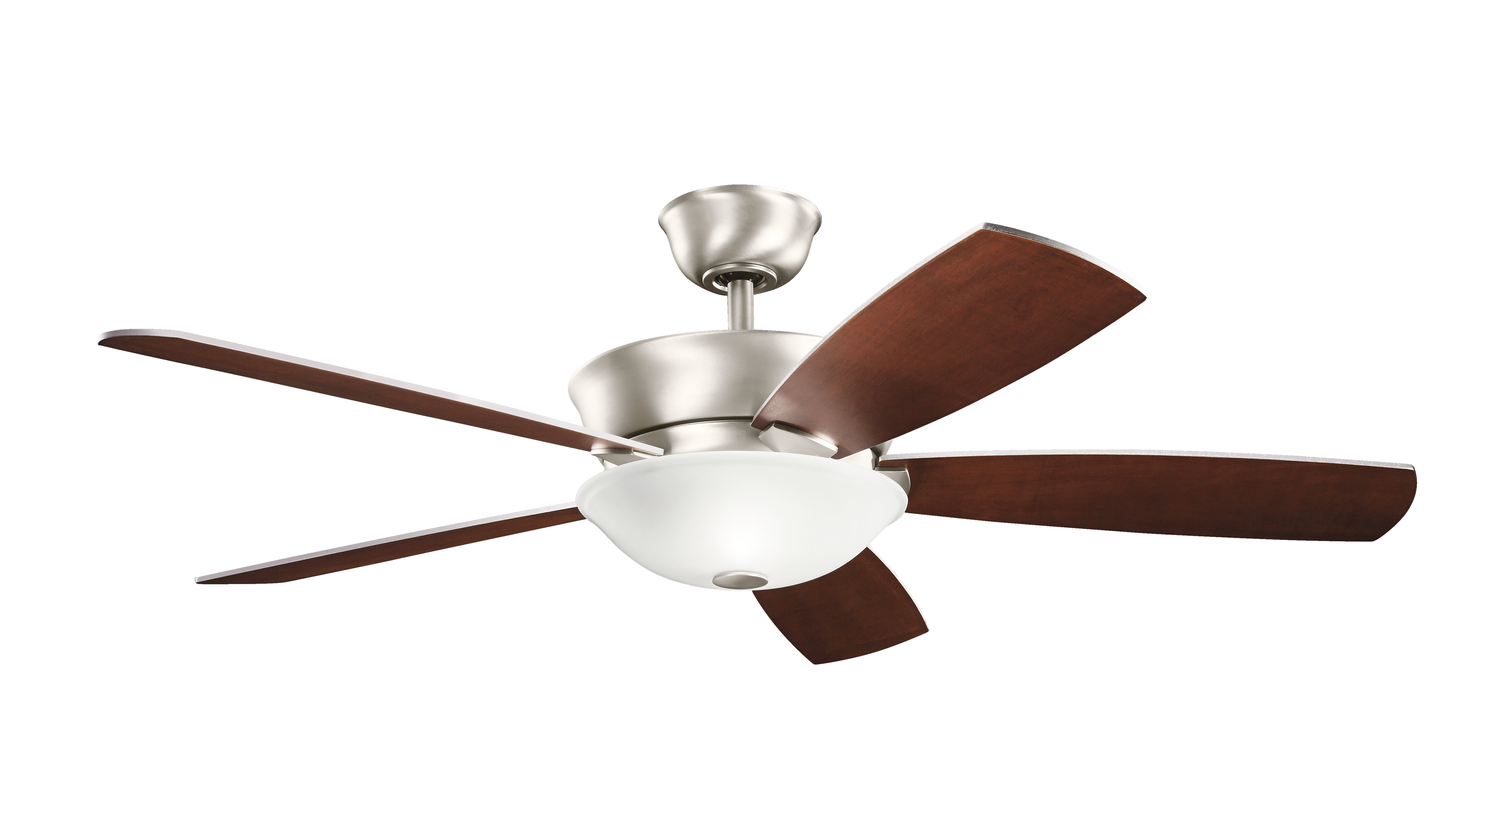 54 inchCeiling Fan from the Skye collection by Kichler 300251NI